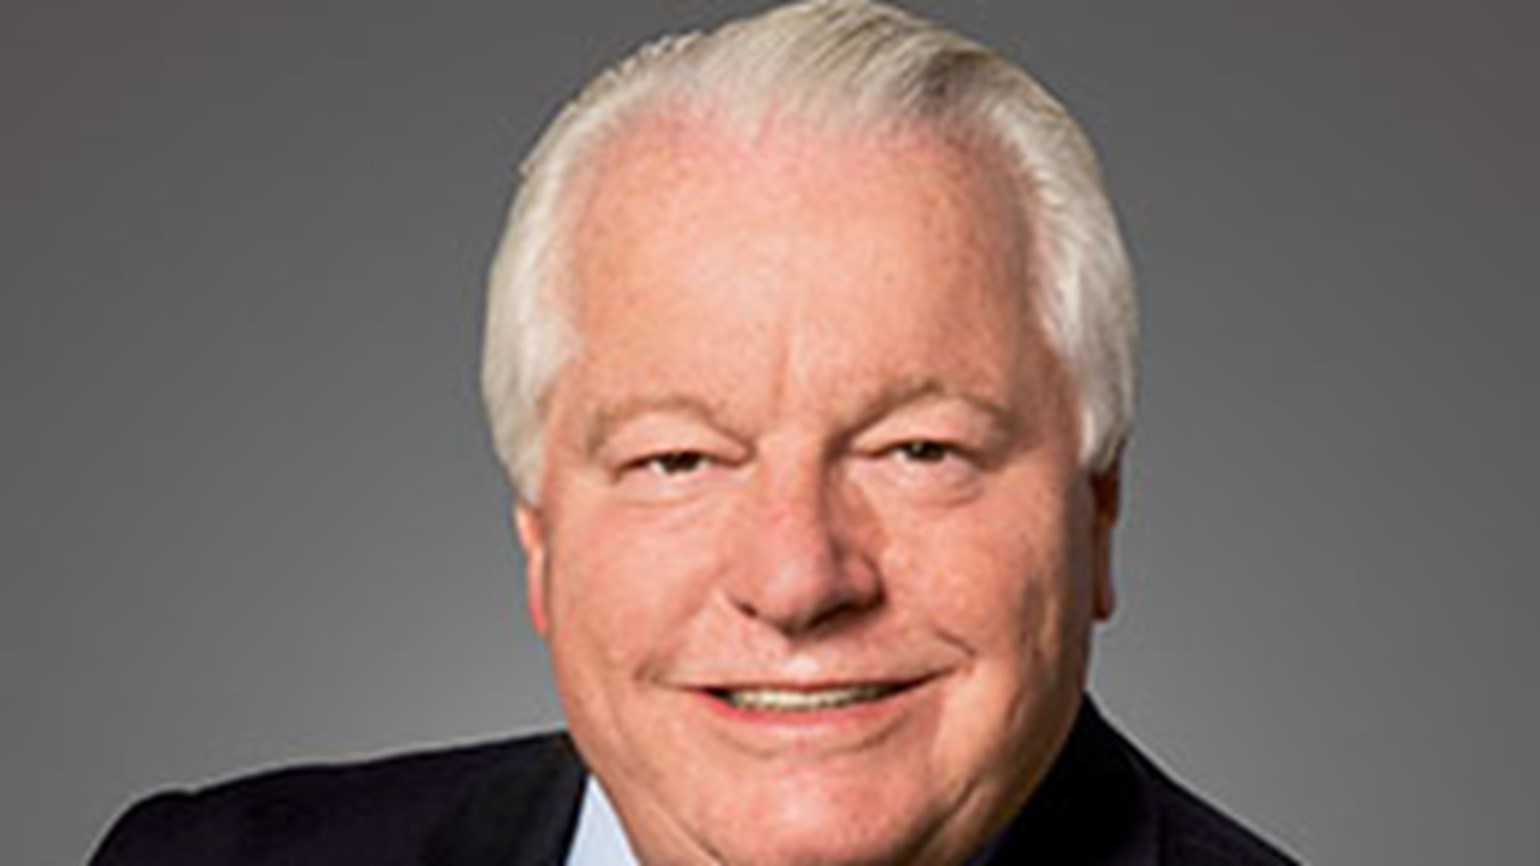 U.S. Travel Association's Roger Dow